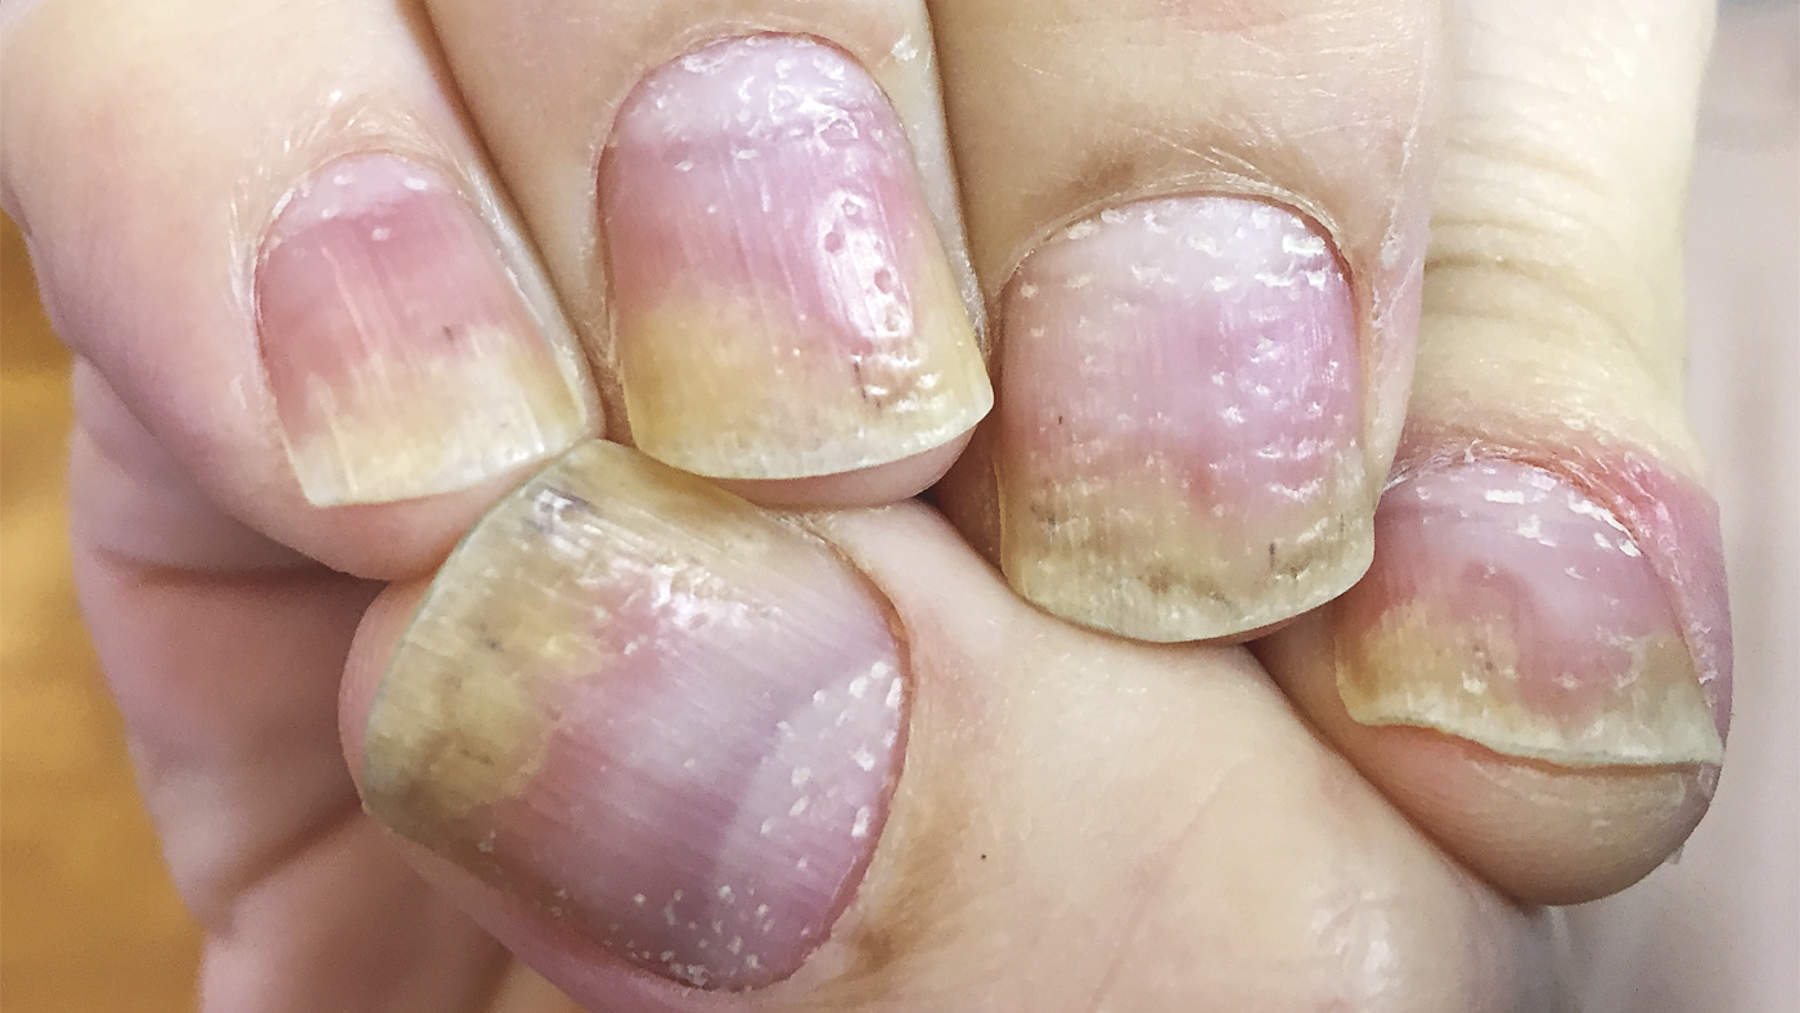 This Man's Pitted Nails Turned Out to Be a Chronic Skin Condition